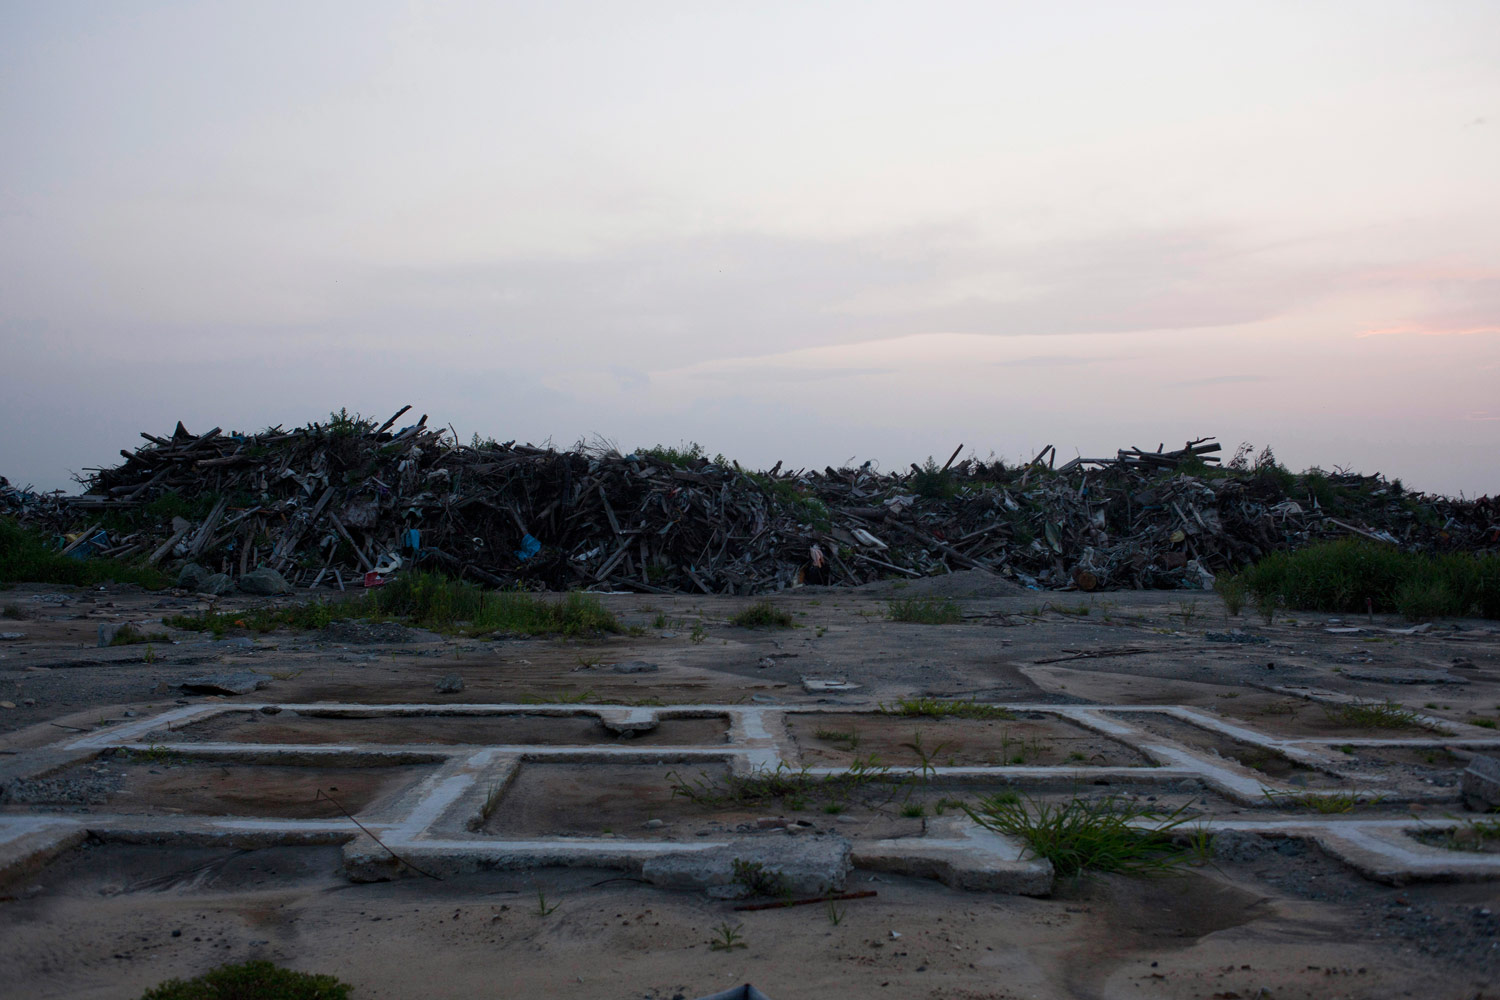 Rubble and debris line the streets of Minamisoma, August 12, 2011.